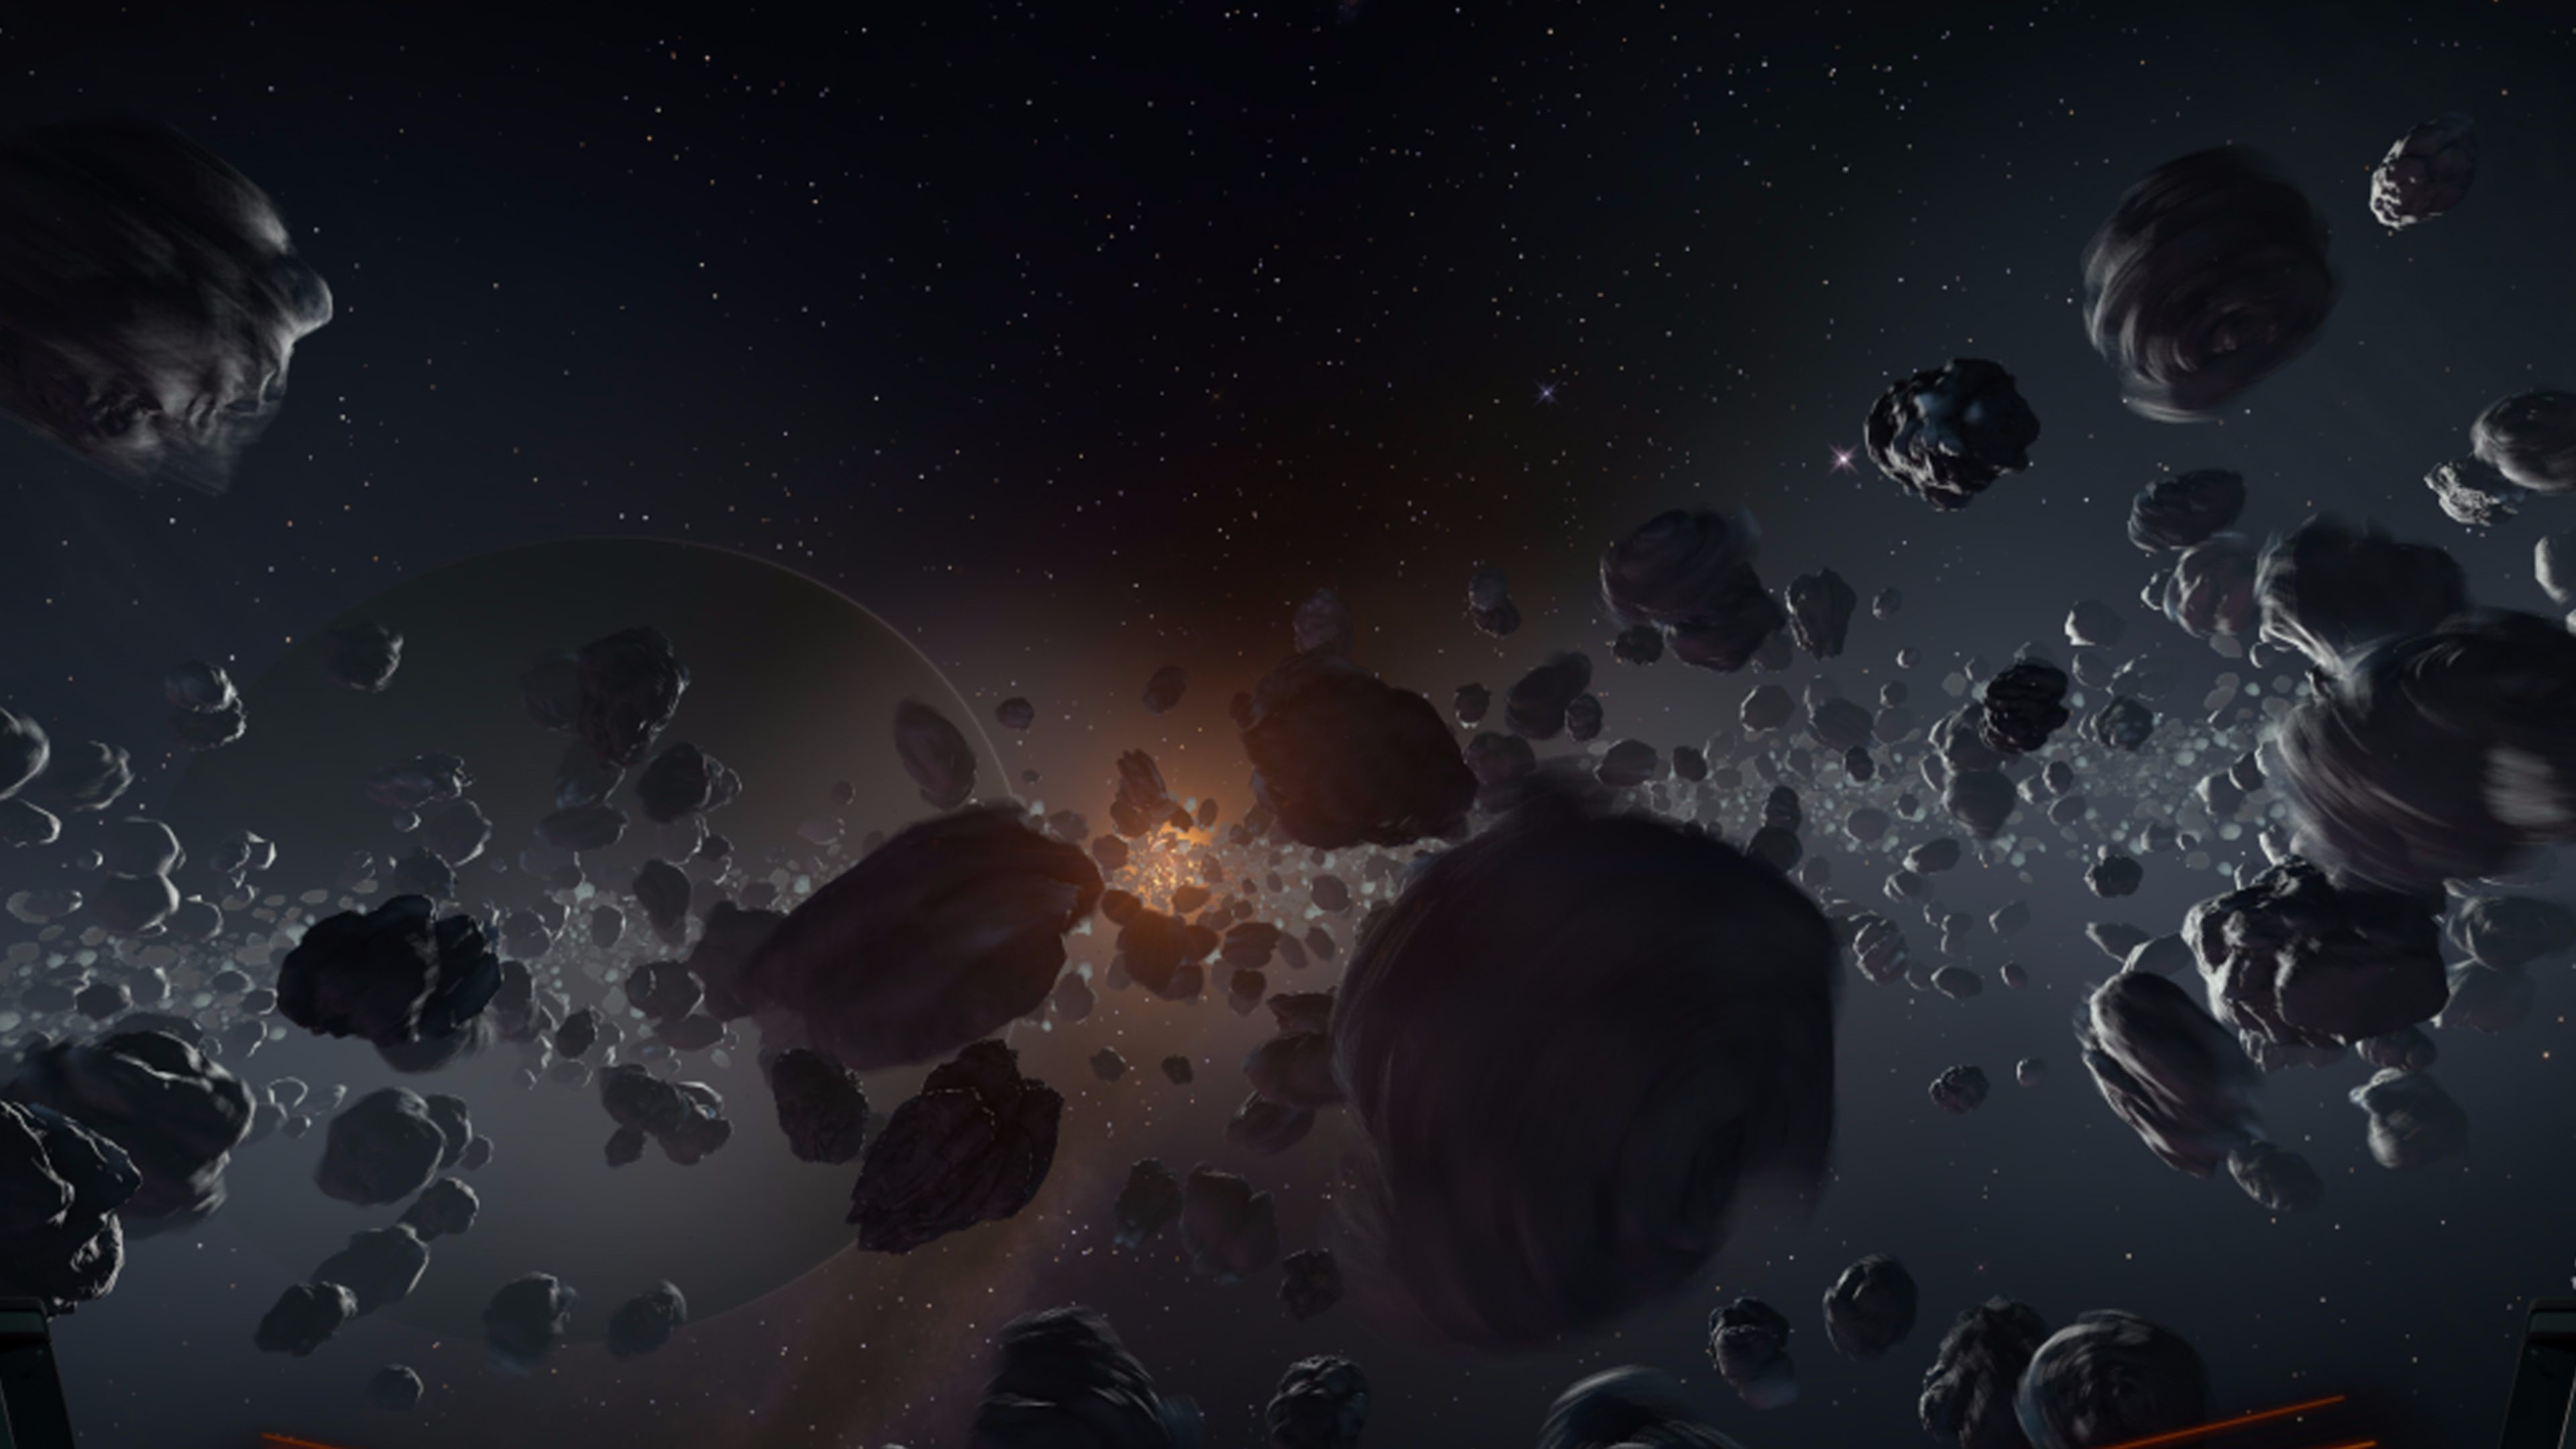 Res: 3840x2160, Cool Asteroid Cluster 4K Wallpaper